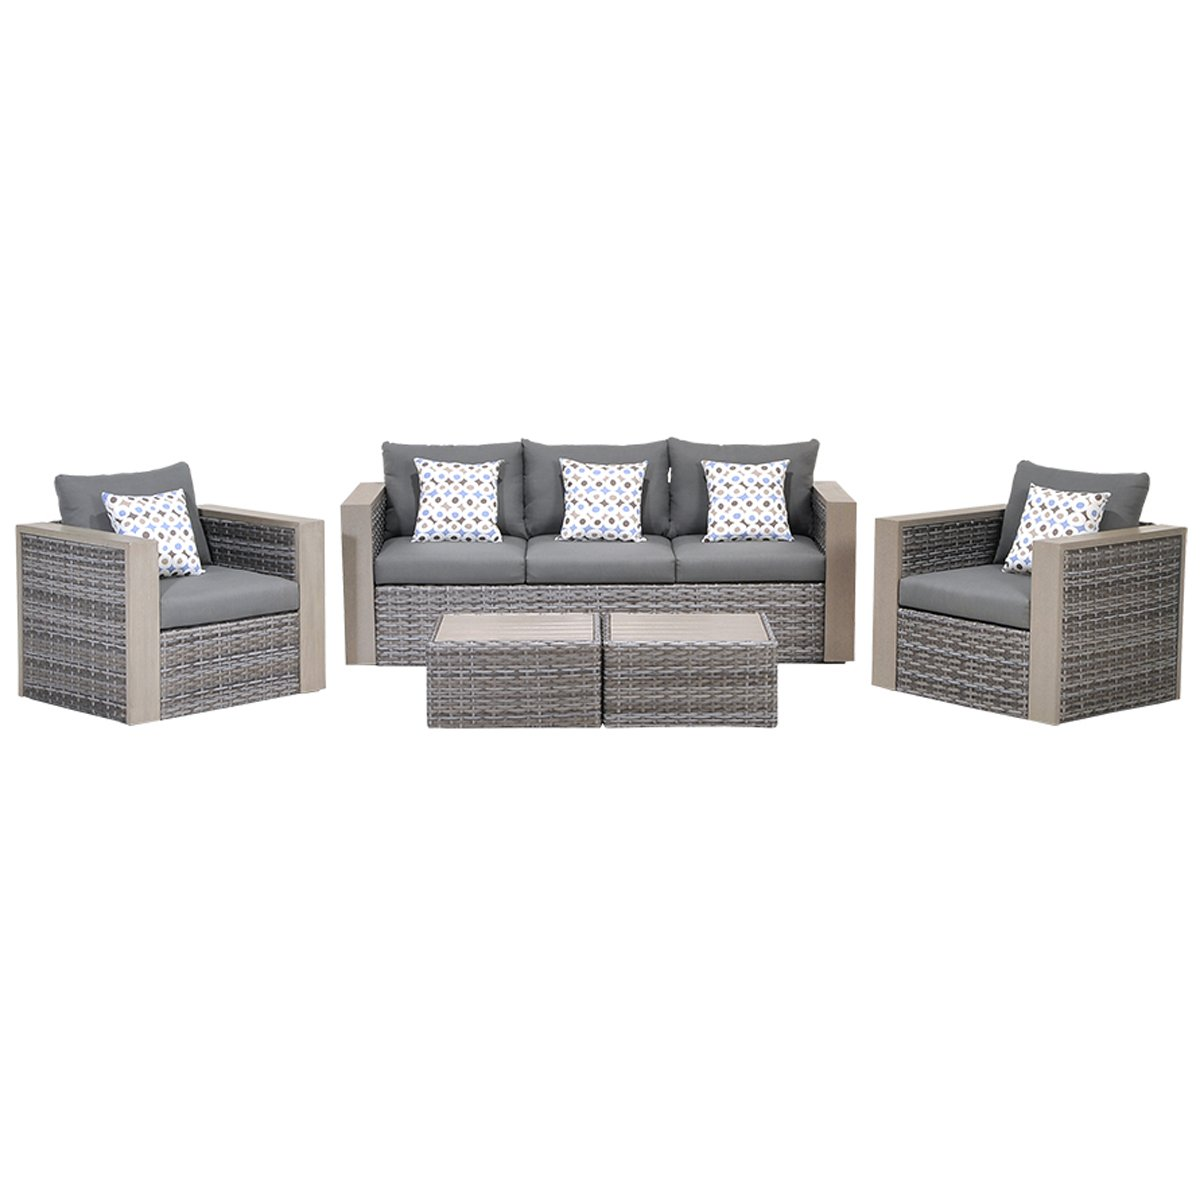 Atlantic 5-Piece Mustang Wicker Conversation Set with Grey Cushions